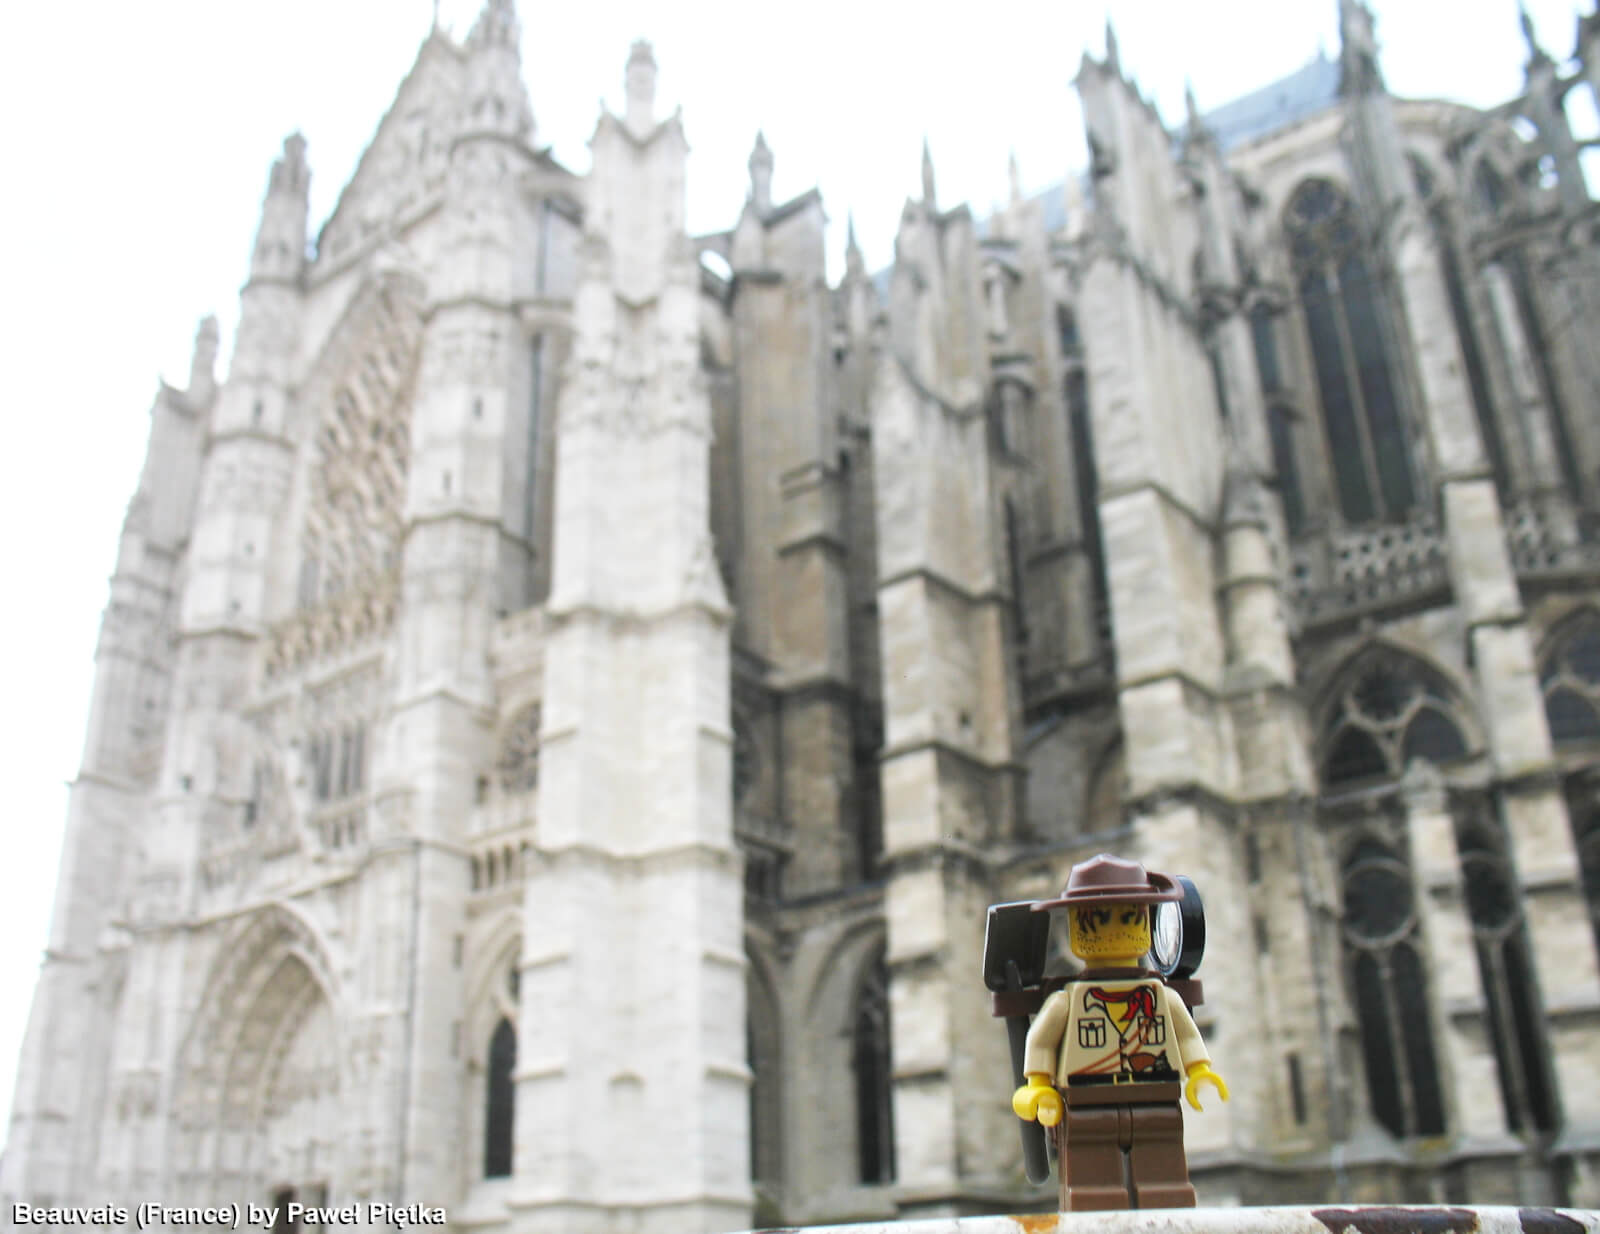 Beauvais (France) - The Cathedral of Saint Peter 2